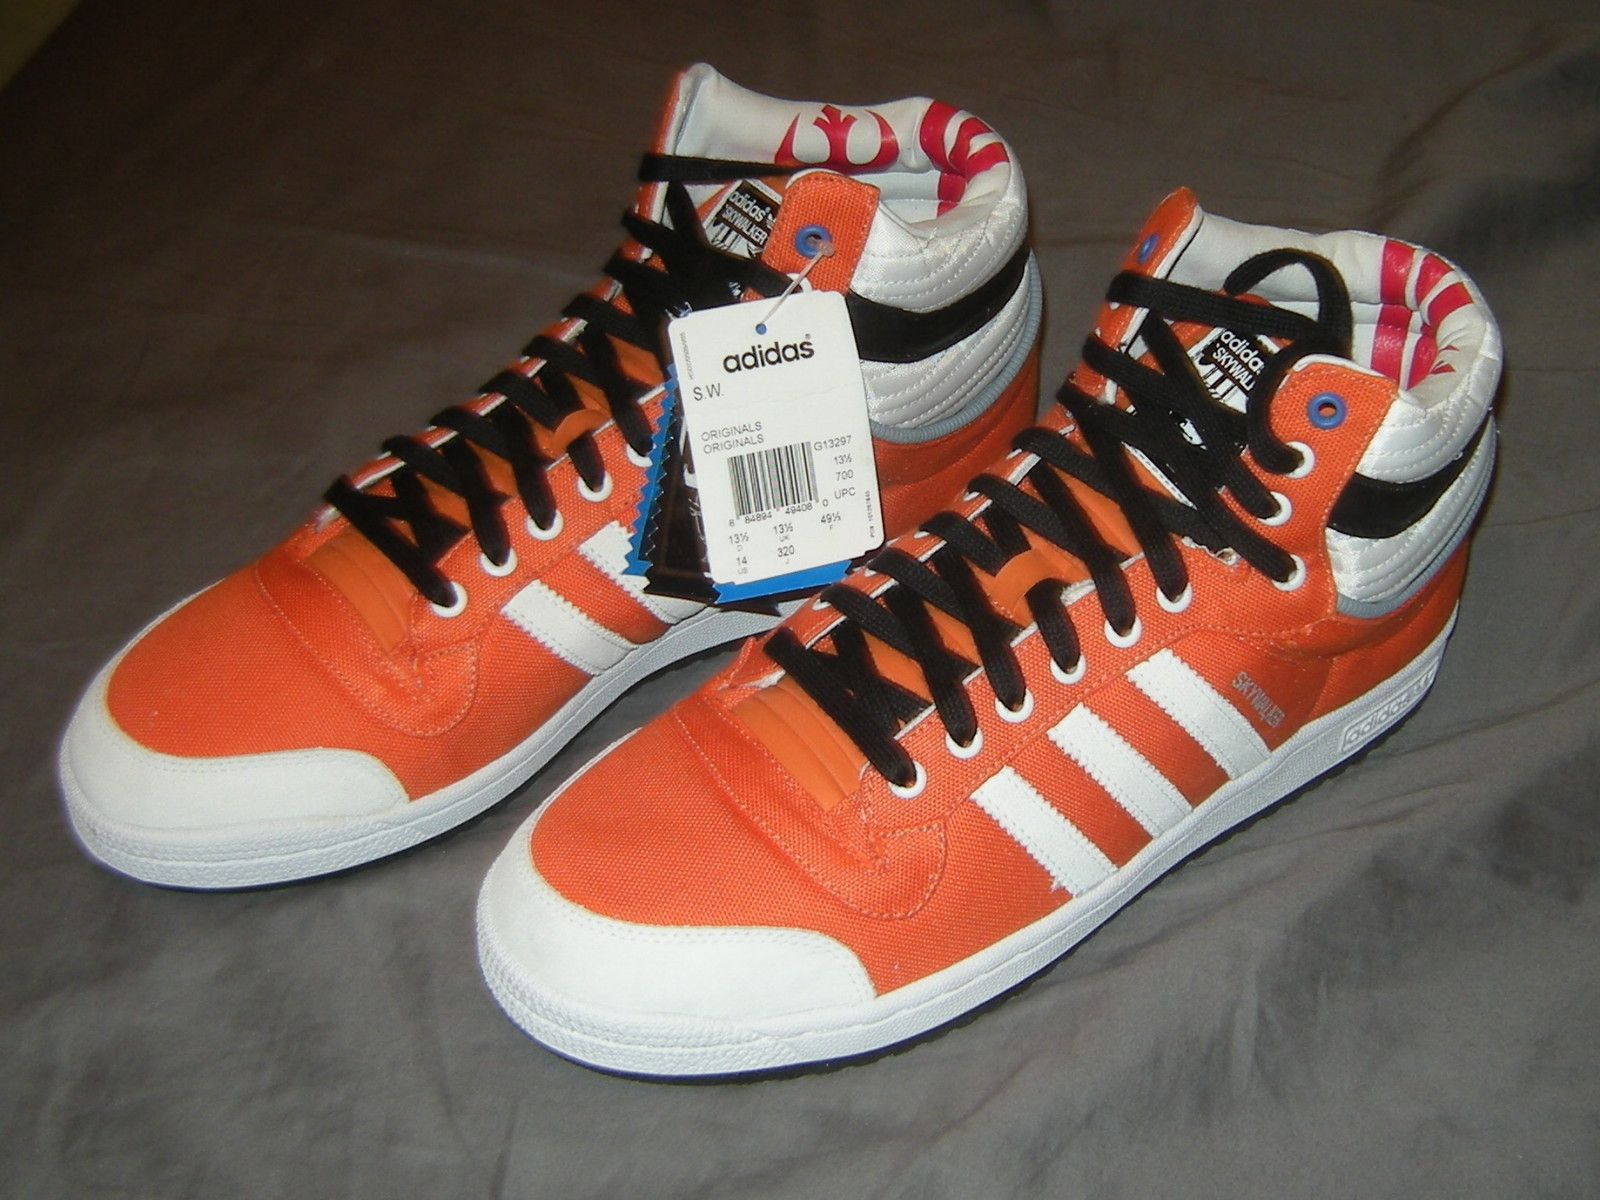 072bfbc808 Adidas Star Wars Luke Skywalker X-Wing SW Sz 14 Sneakers